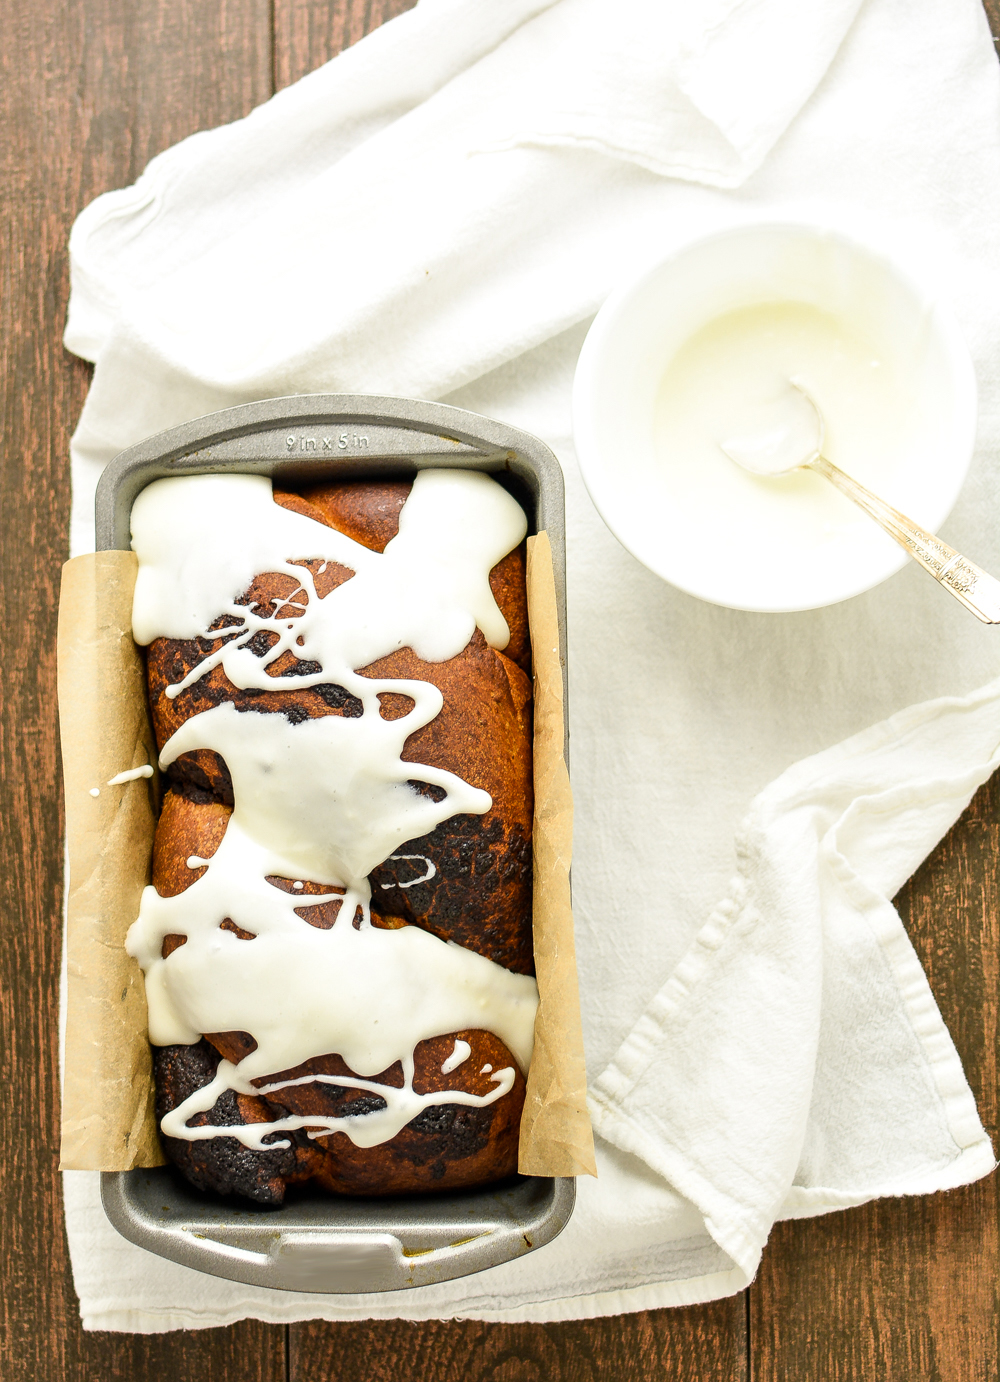 This not so traditional Chocolate Hazelnut Babka with Cream Cheese Glaze is the perfect sweet bread for breakfast or dessert!